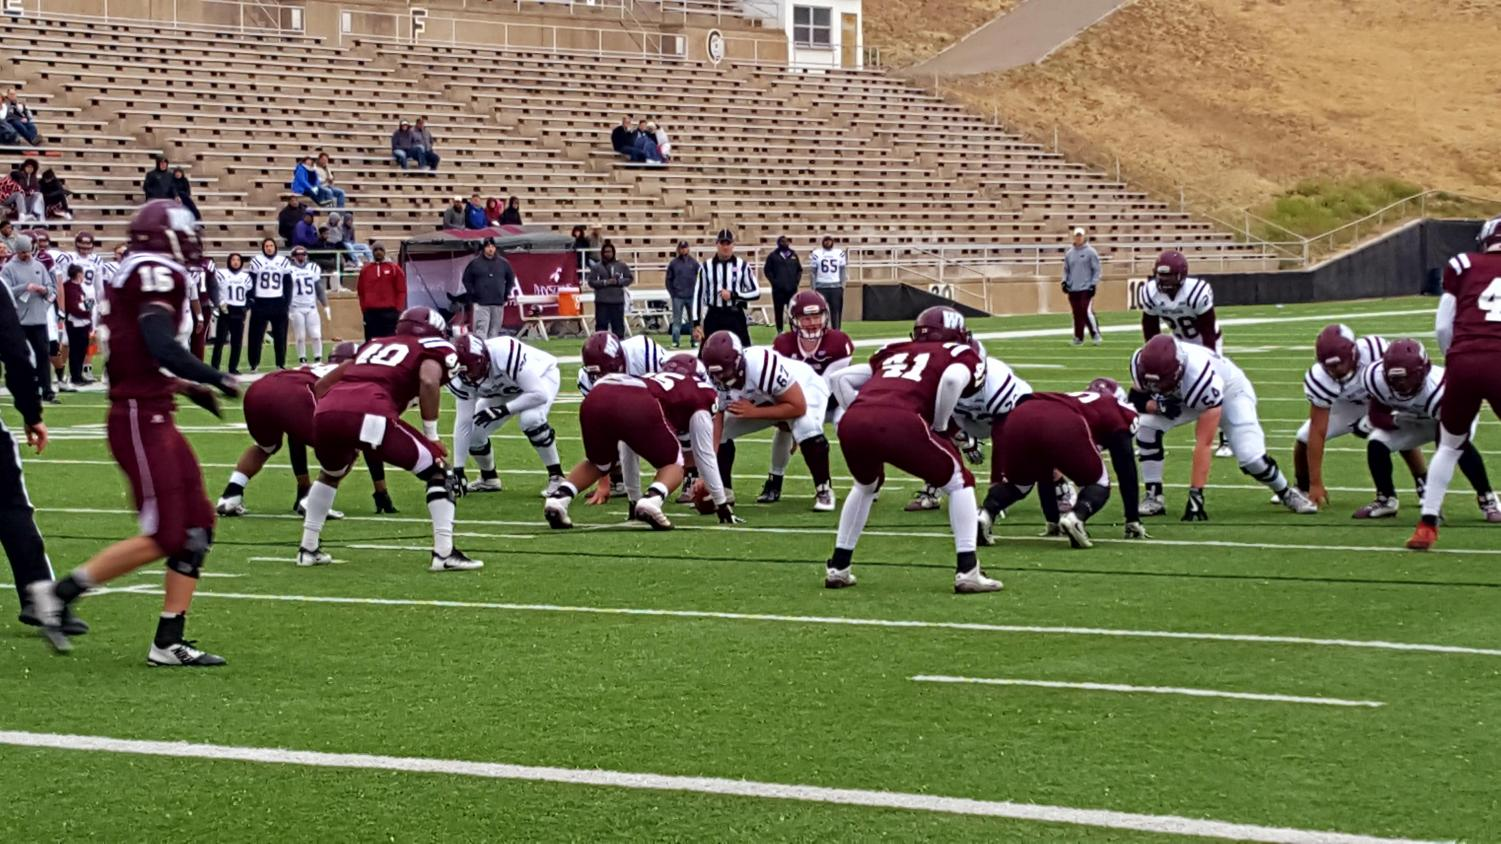 West Texas A&M will be in Kimbrough Memorial Stadium for the final time in the 2018 season prior to moving to the new on-campus Buffalo Stadium in 2019.